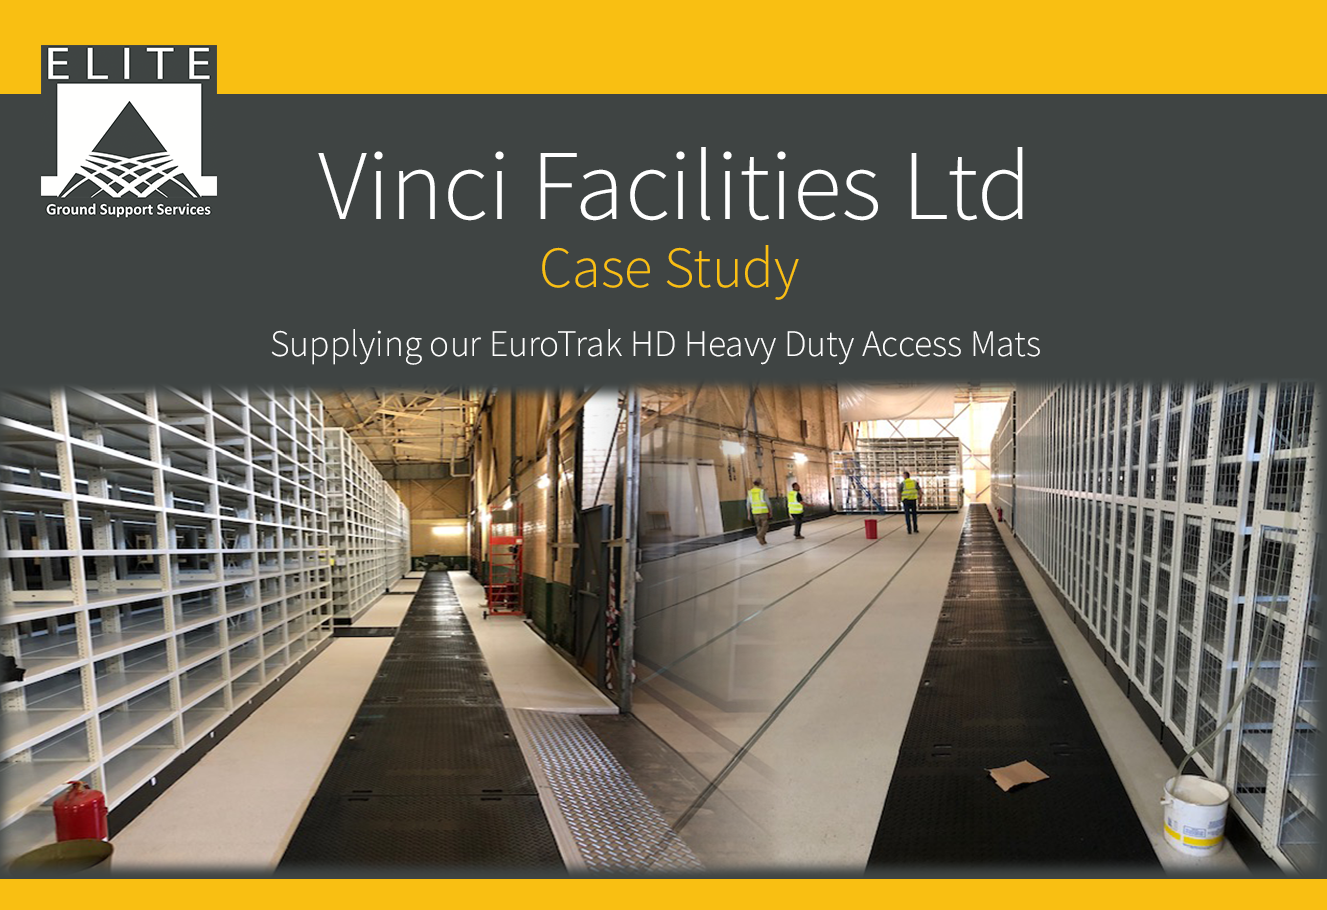 vinci-facilities-ltd-main